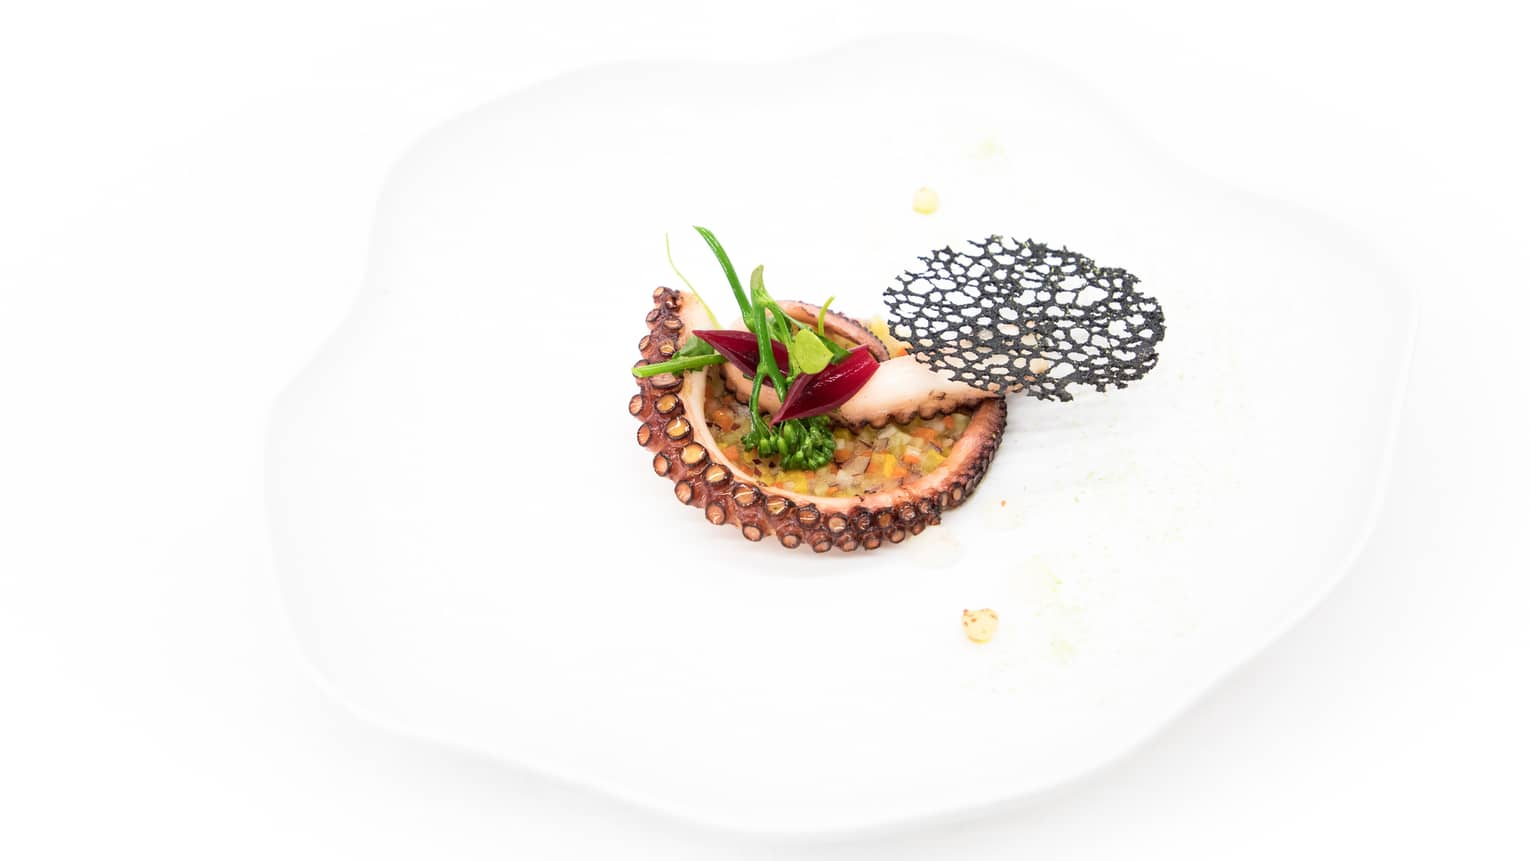 Octopus Confit from Algarve with crispy vegetables on white dish with lemon gel, Espelette pepper, green shiso